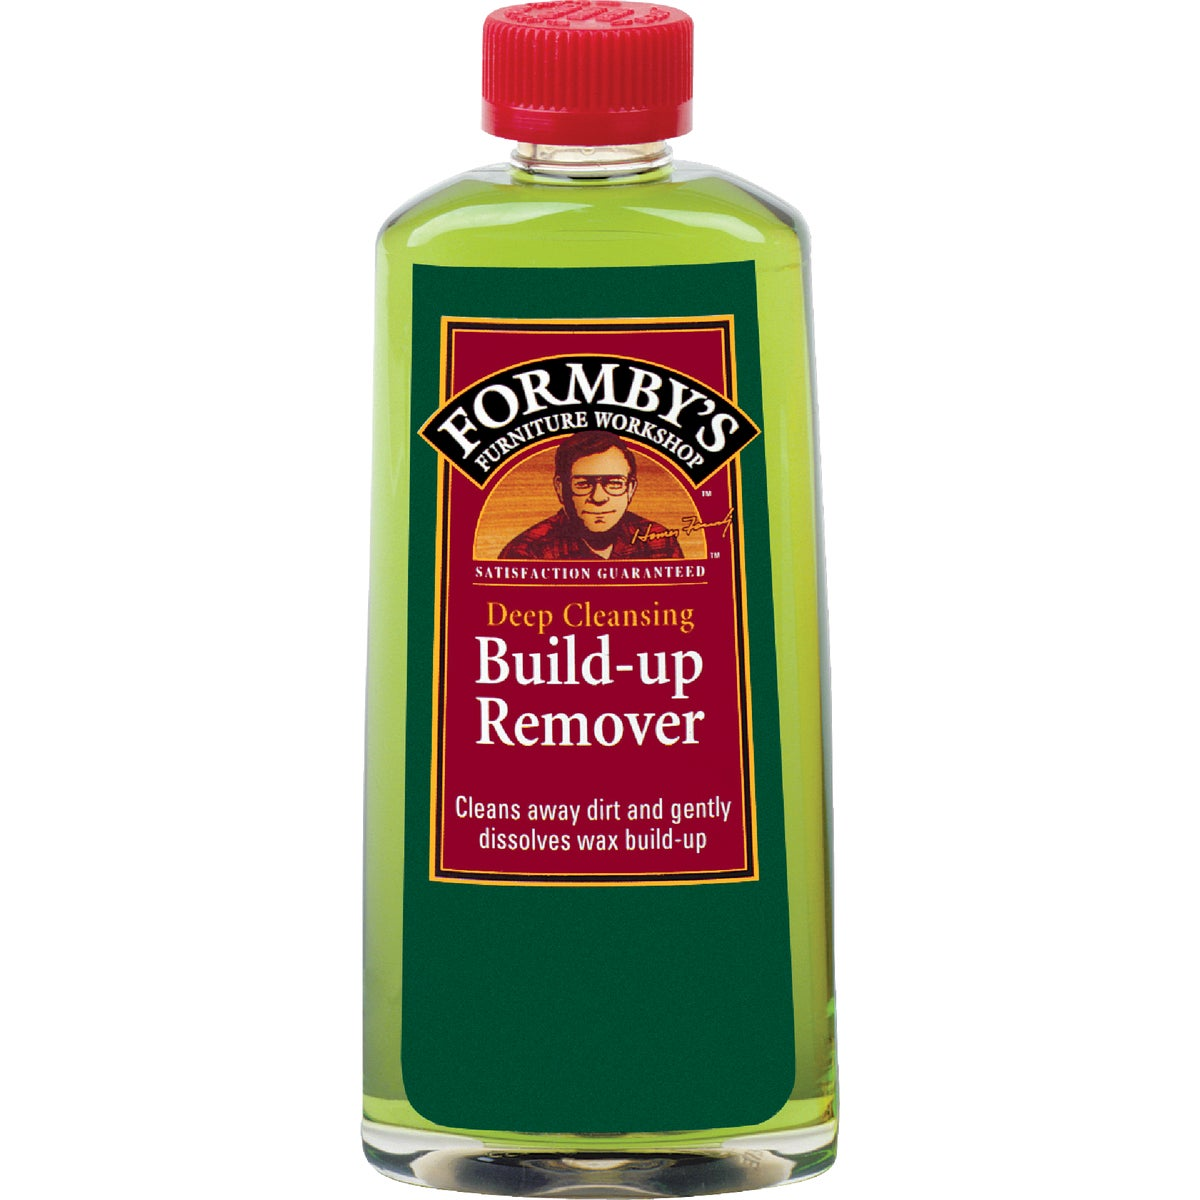 Build-Up Remover